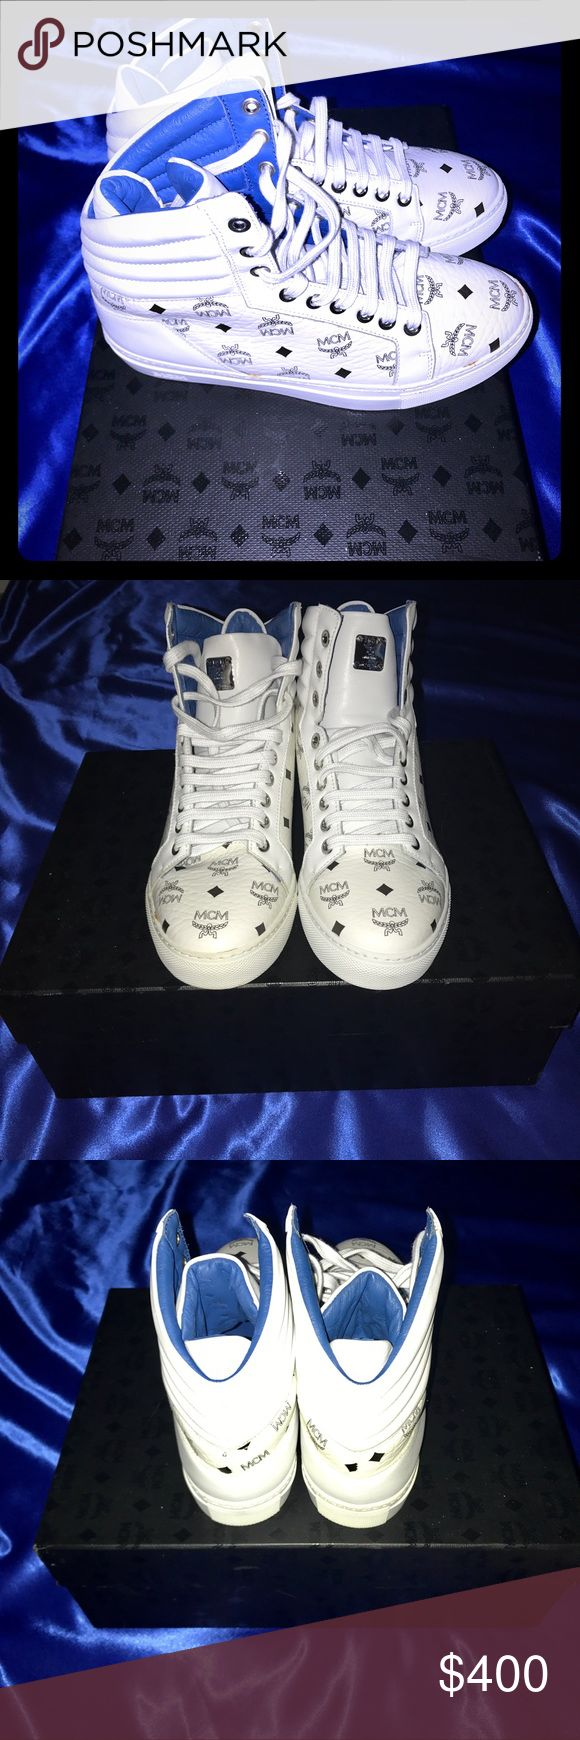 Men's MCM Sneakers Men's MCM sneakers. New in box with dust bag and authenticity documents. EUR size 36 / US size 4.5 Originally sell for $550. MCM Shoes Sneakers